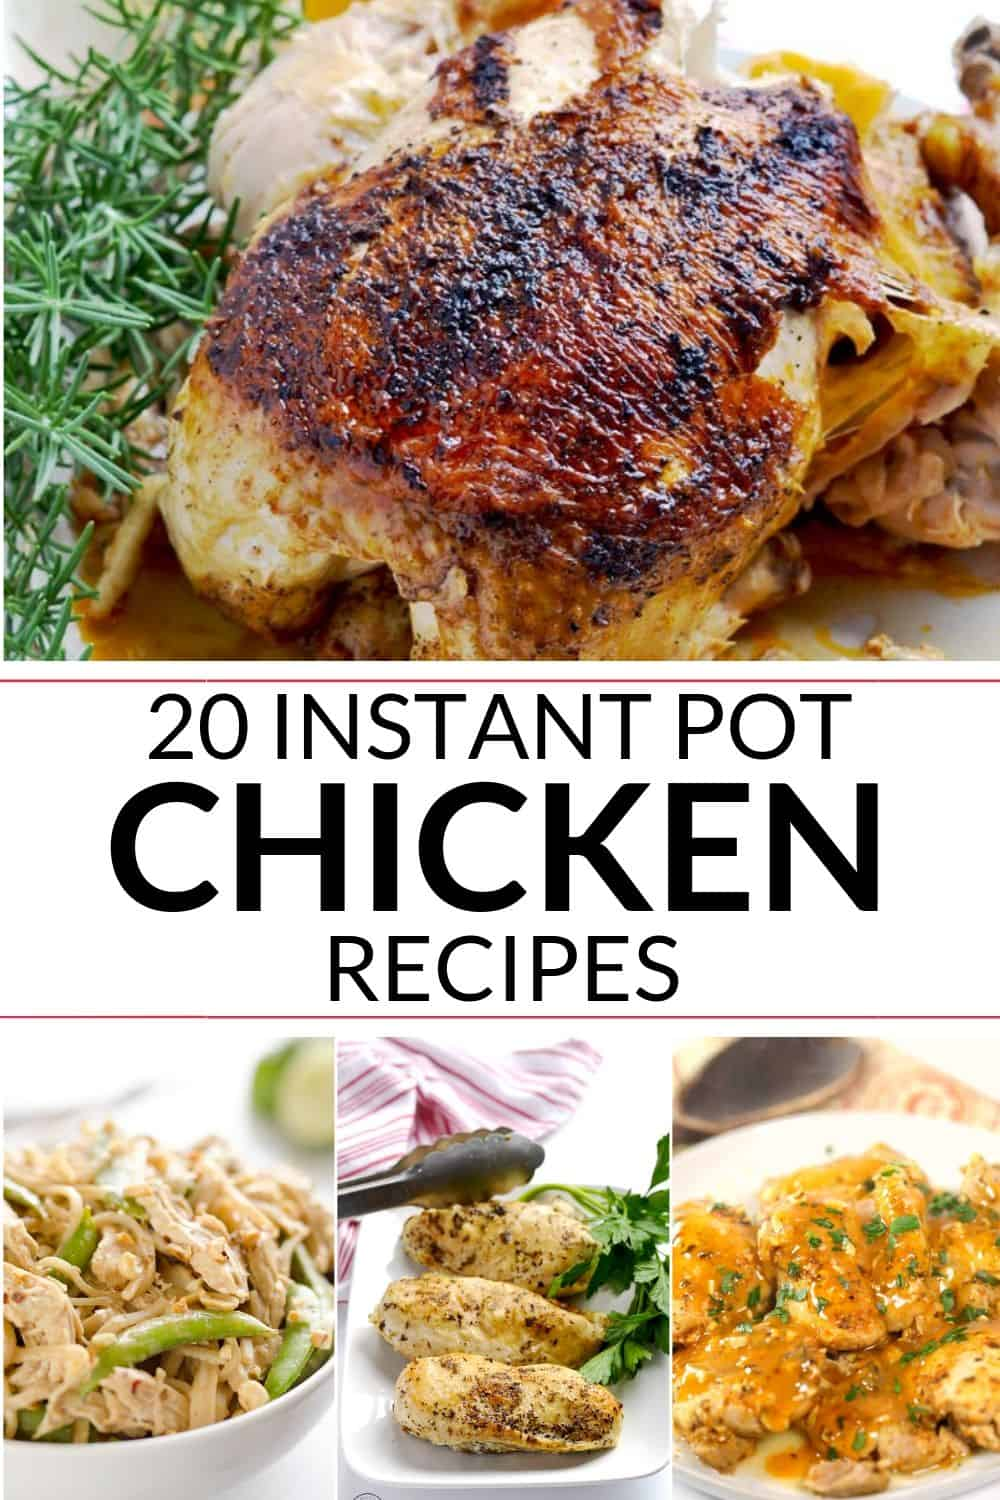 COLLECTION OF INSTANT POT CHICKEN RECIPES